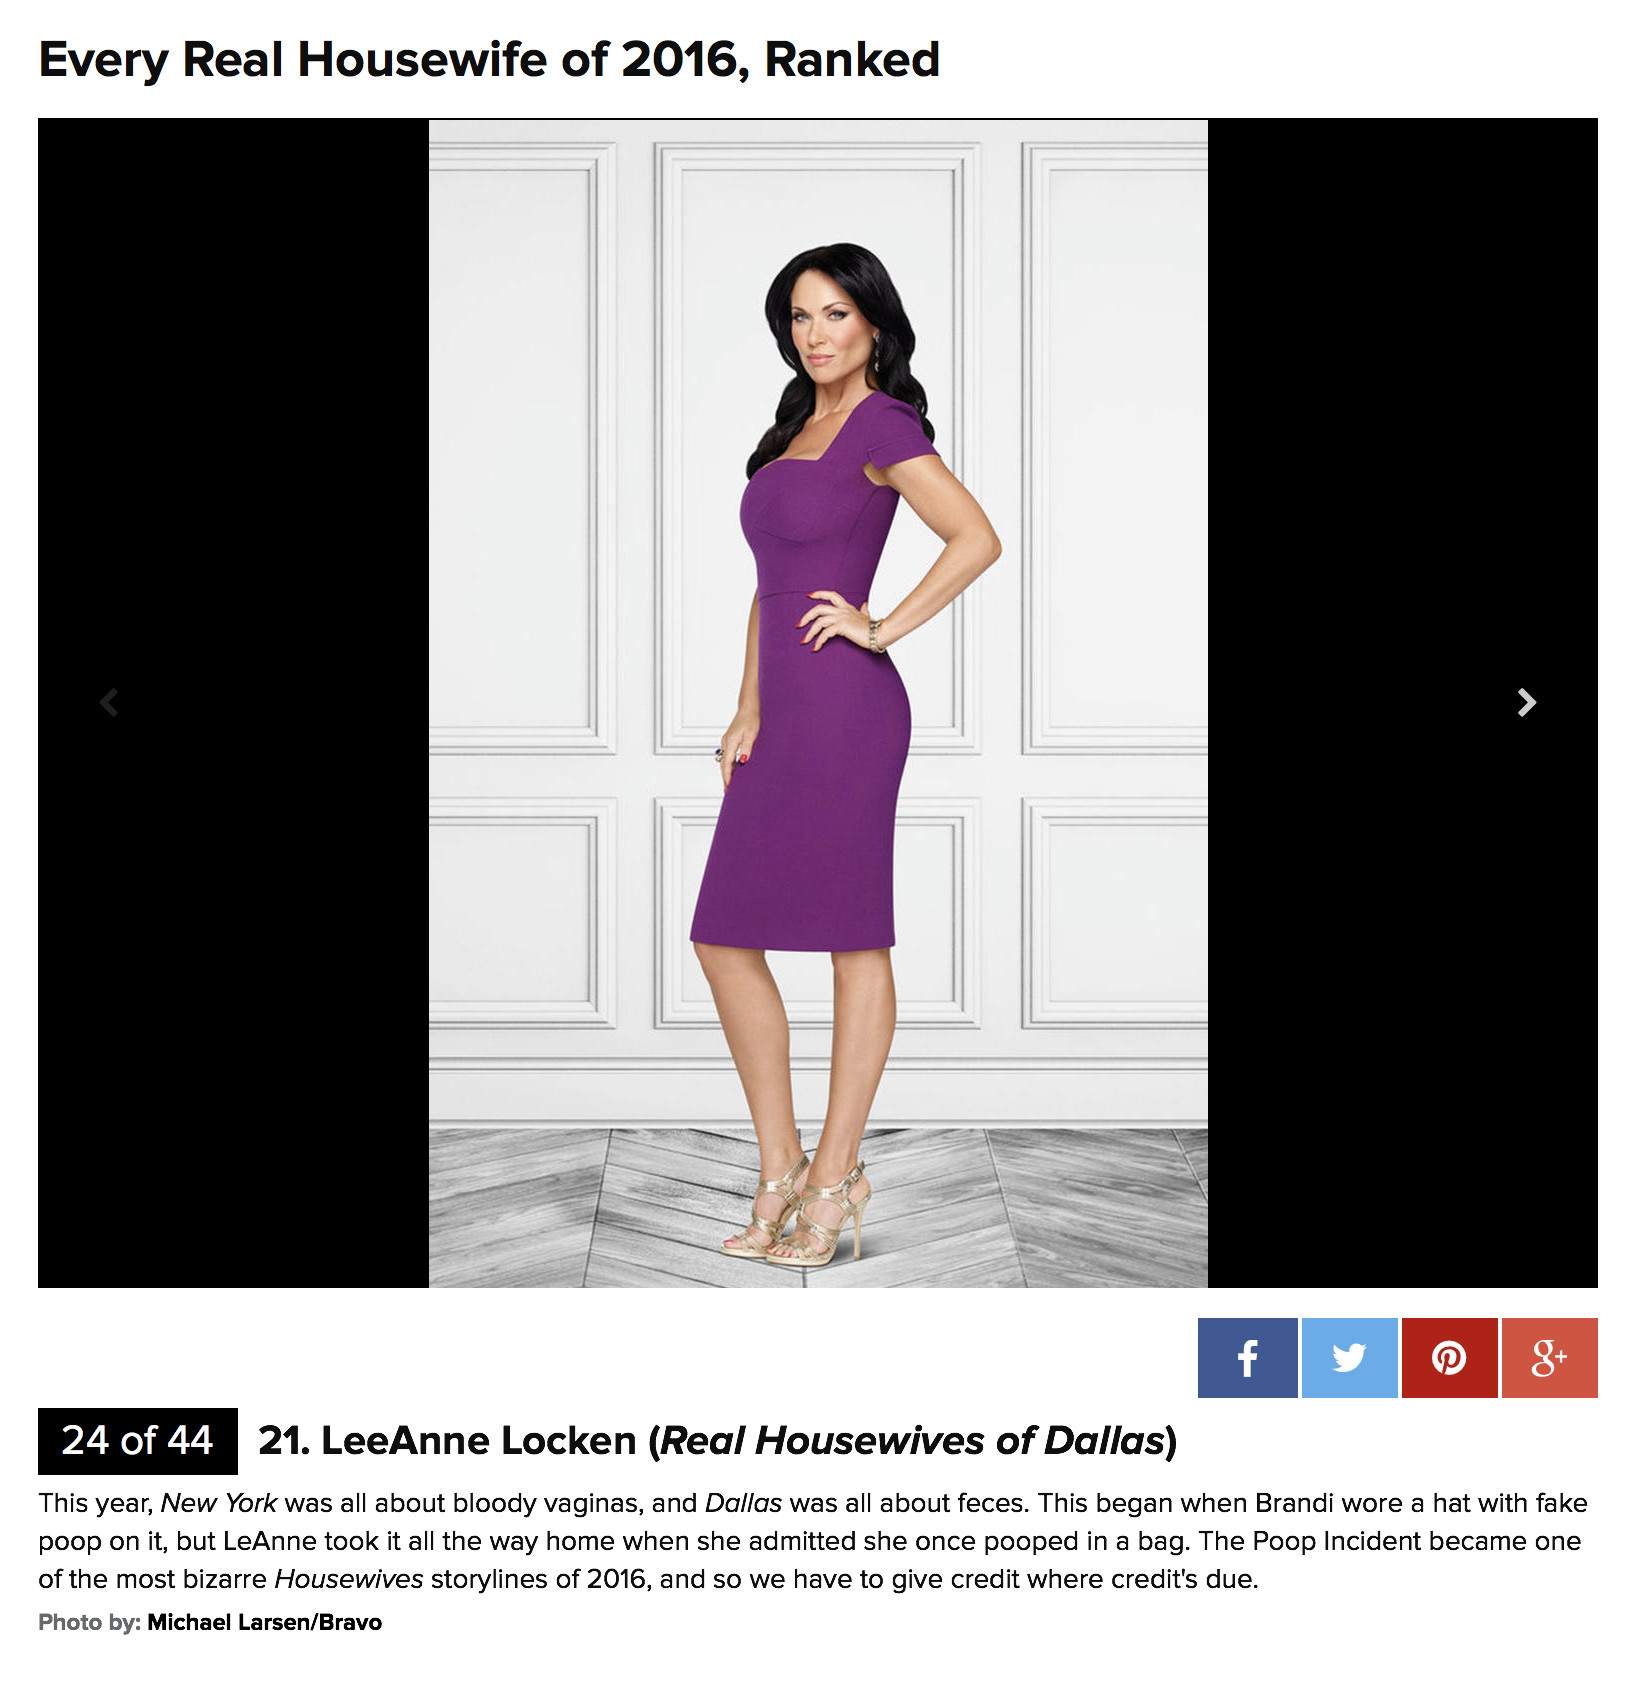 E News Ranking Top Housewives